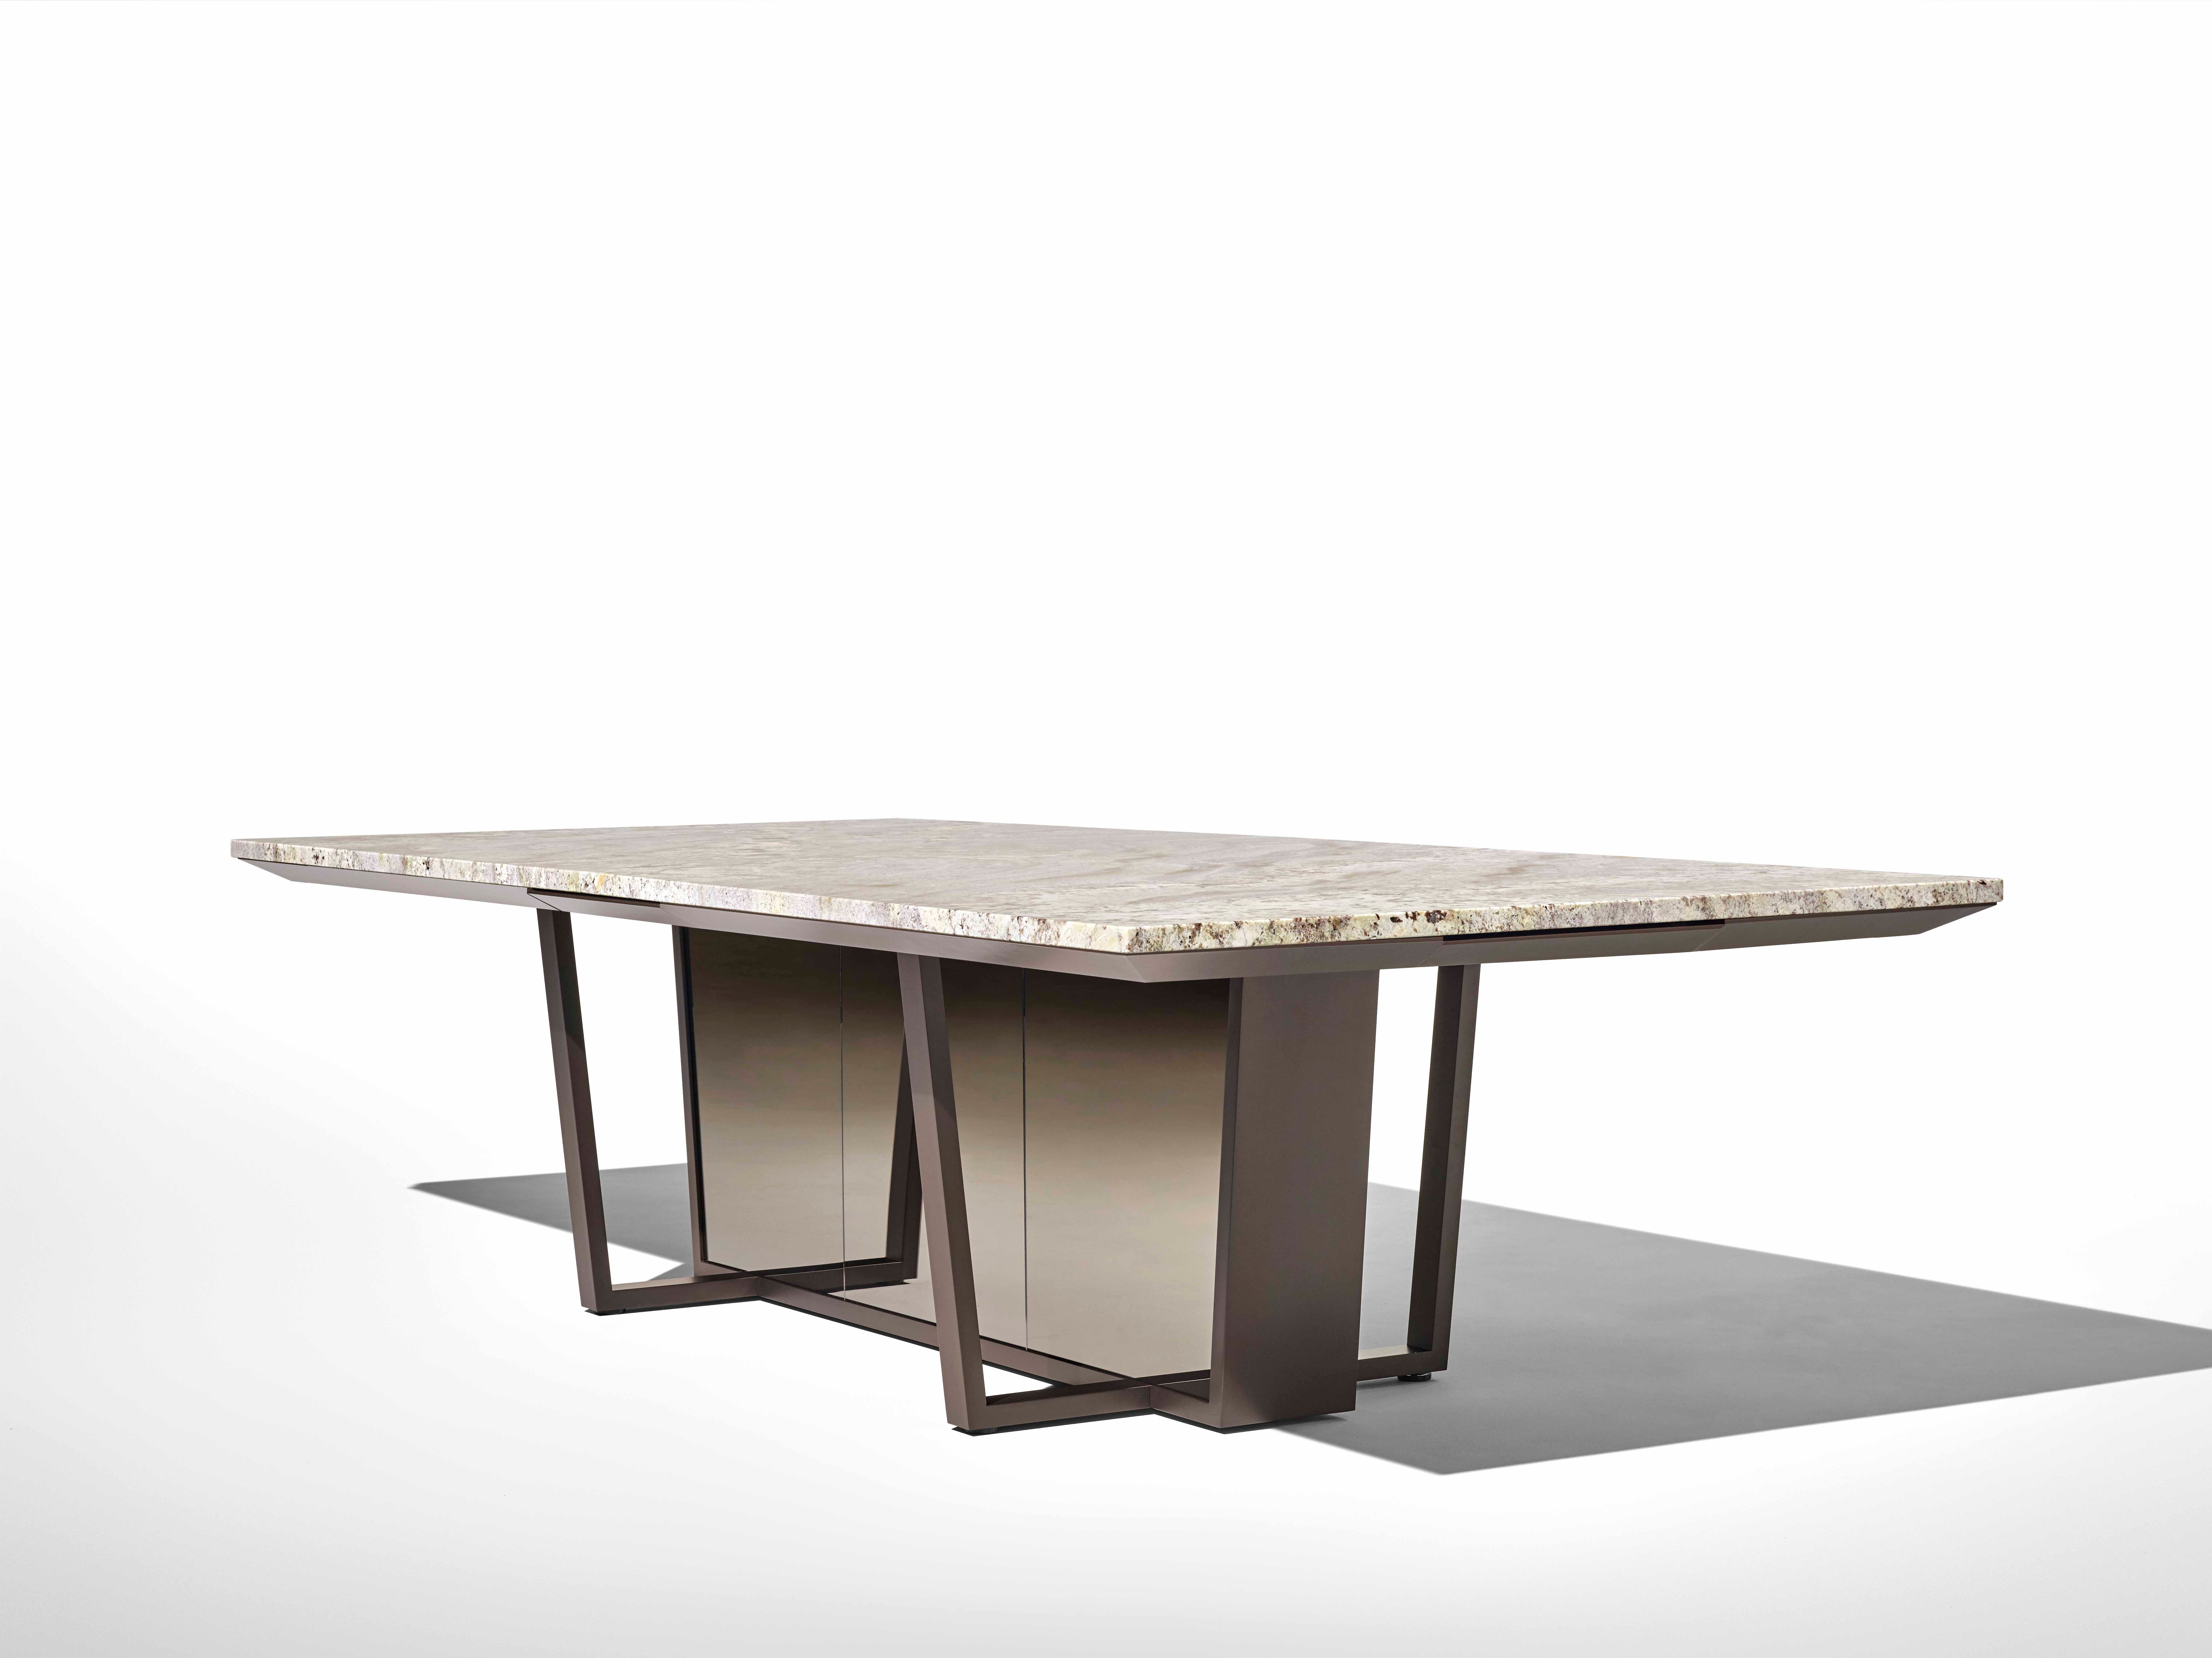 The Crossbeam table for Nucraft has an angled and modern form.